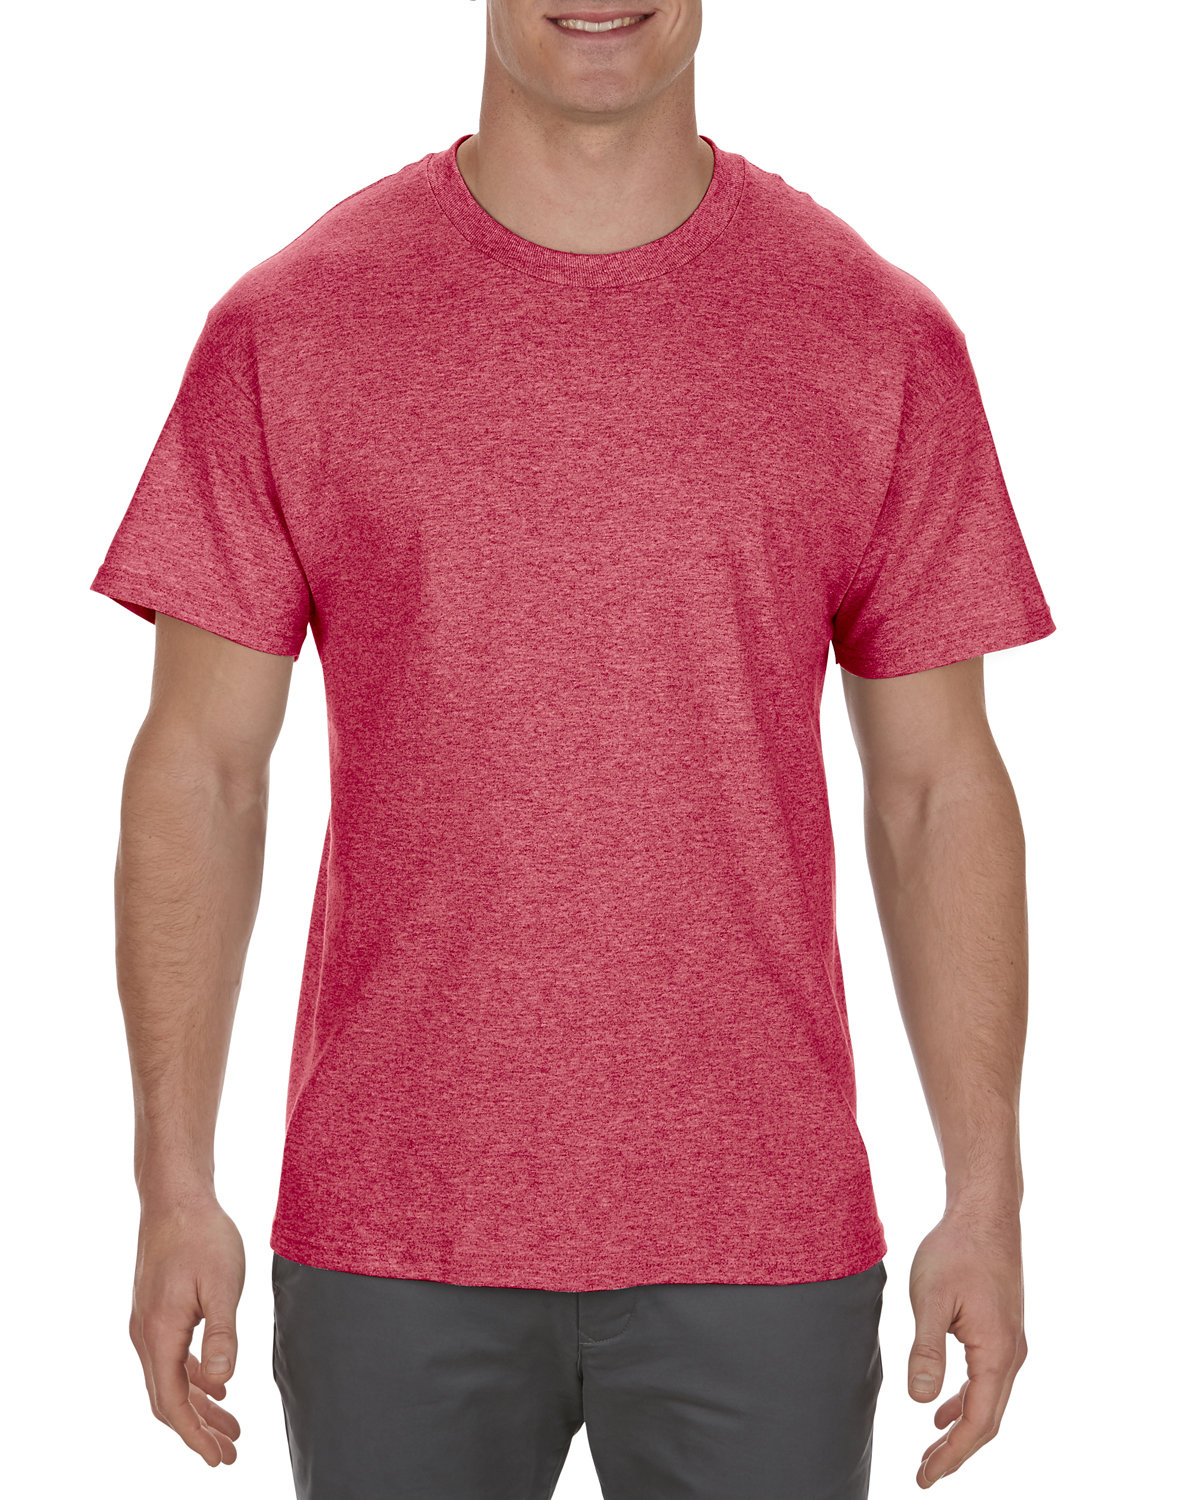 Alstyle Adult 5.1 oz., 100% Cotton T-Shirt RED HEATHER